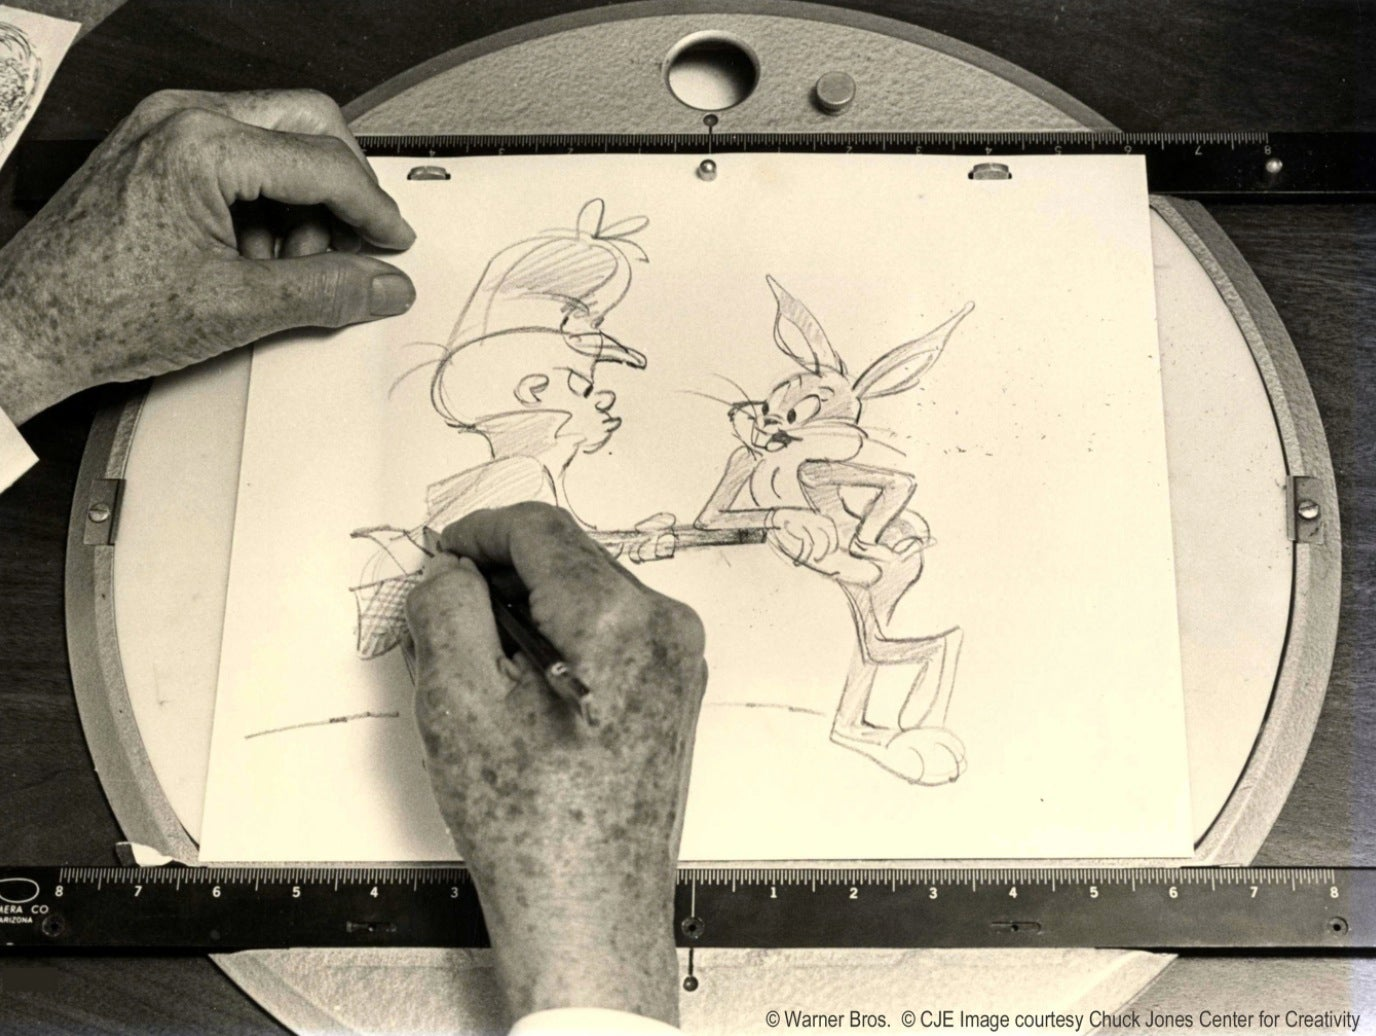 From Bugs Bunny to Wile E. Coyote: The Animation Genius of Chuck Jones